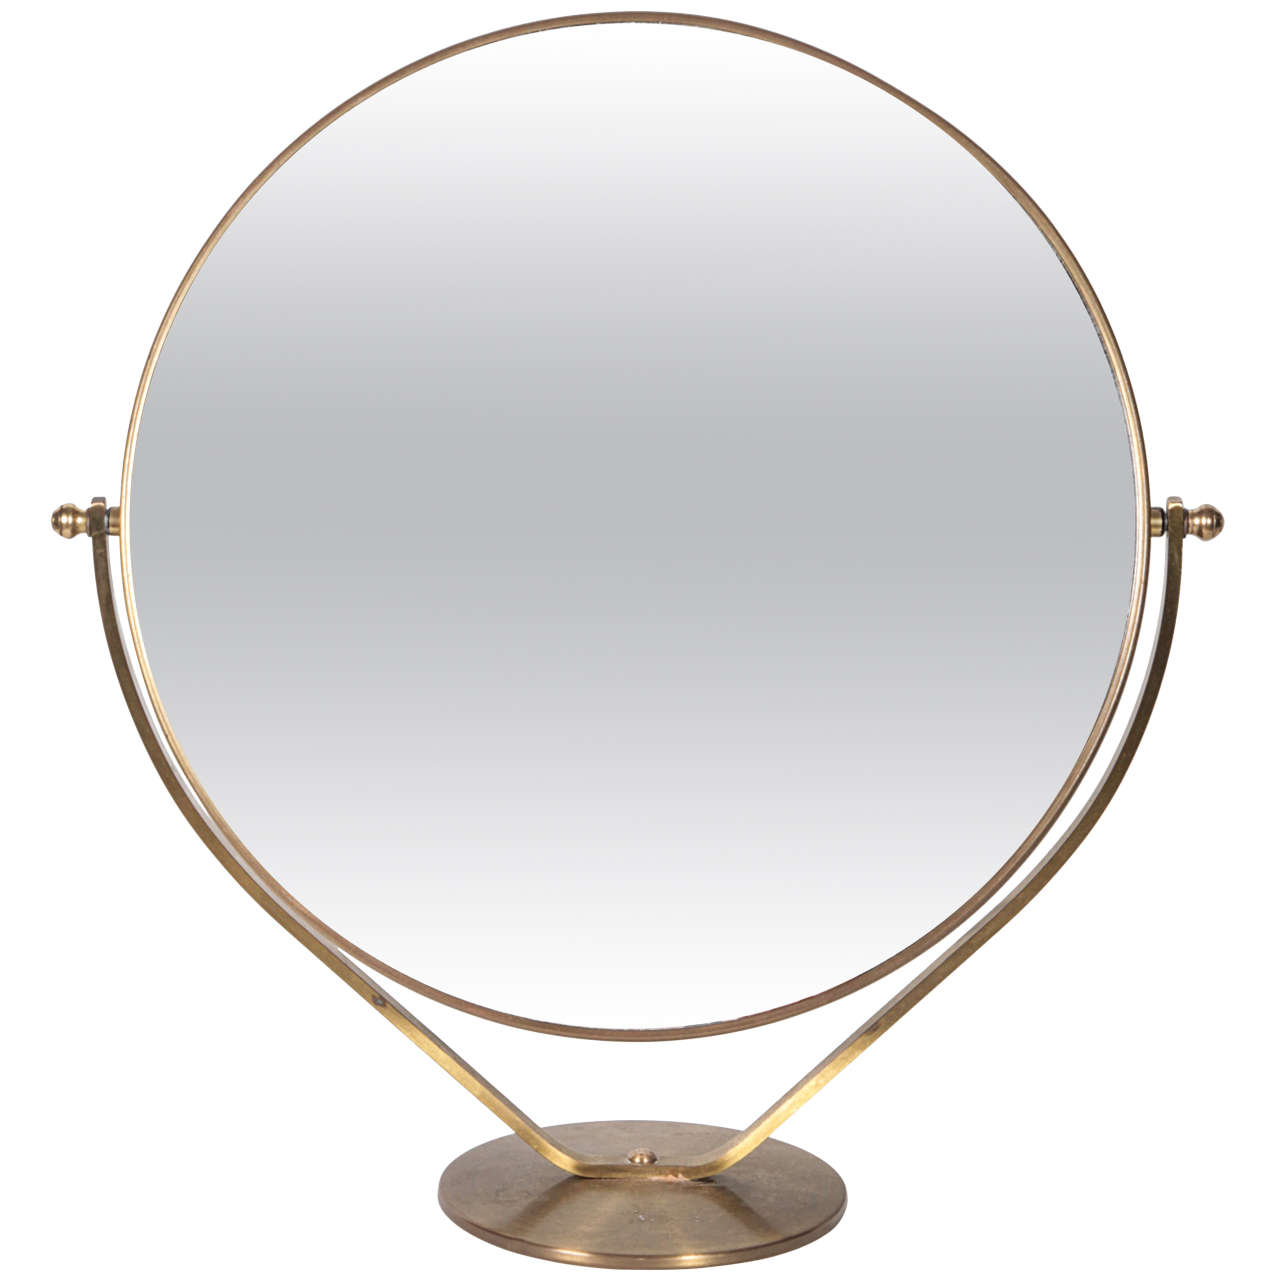 Ordinaire Graceful Tabletop Vanity Mirror For Sale